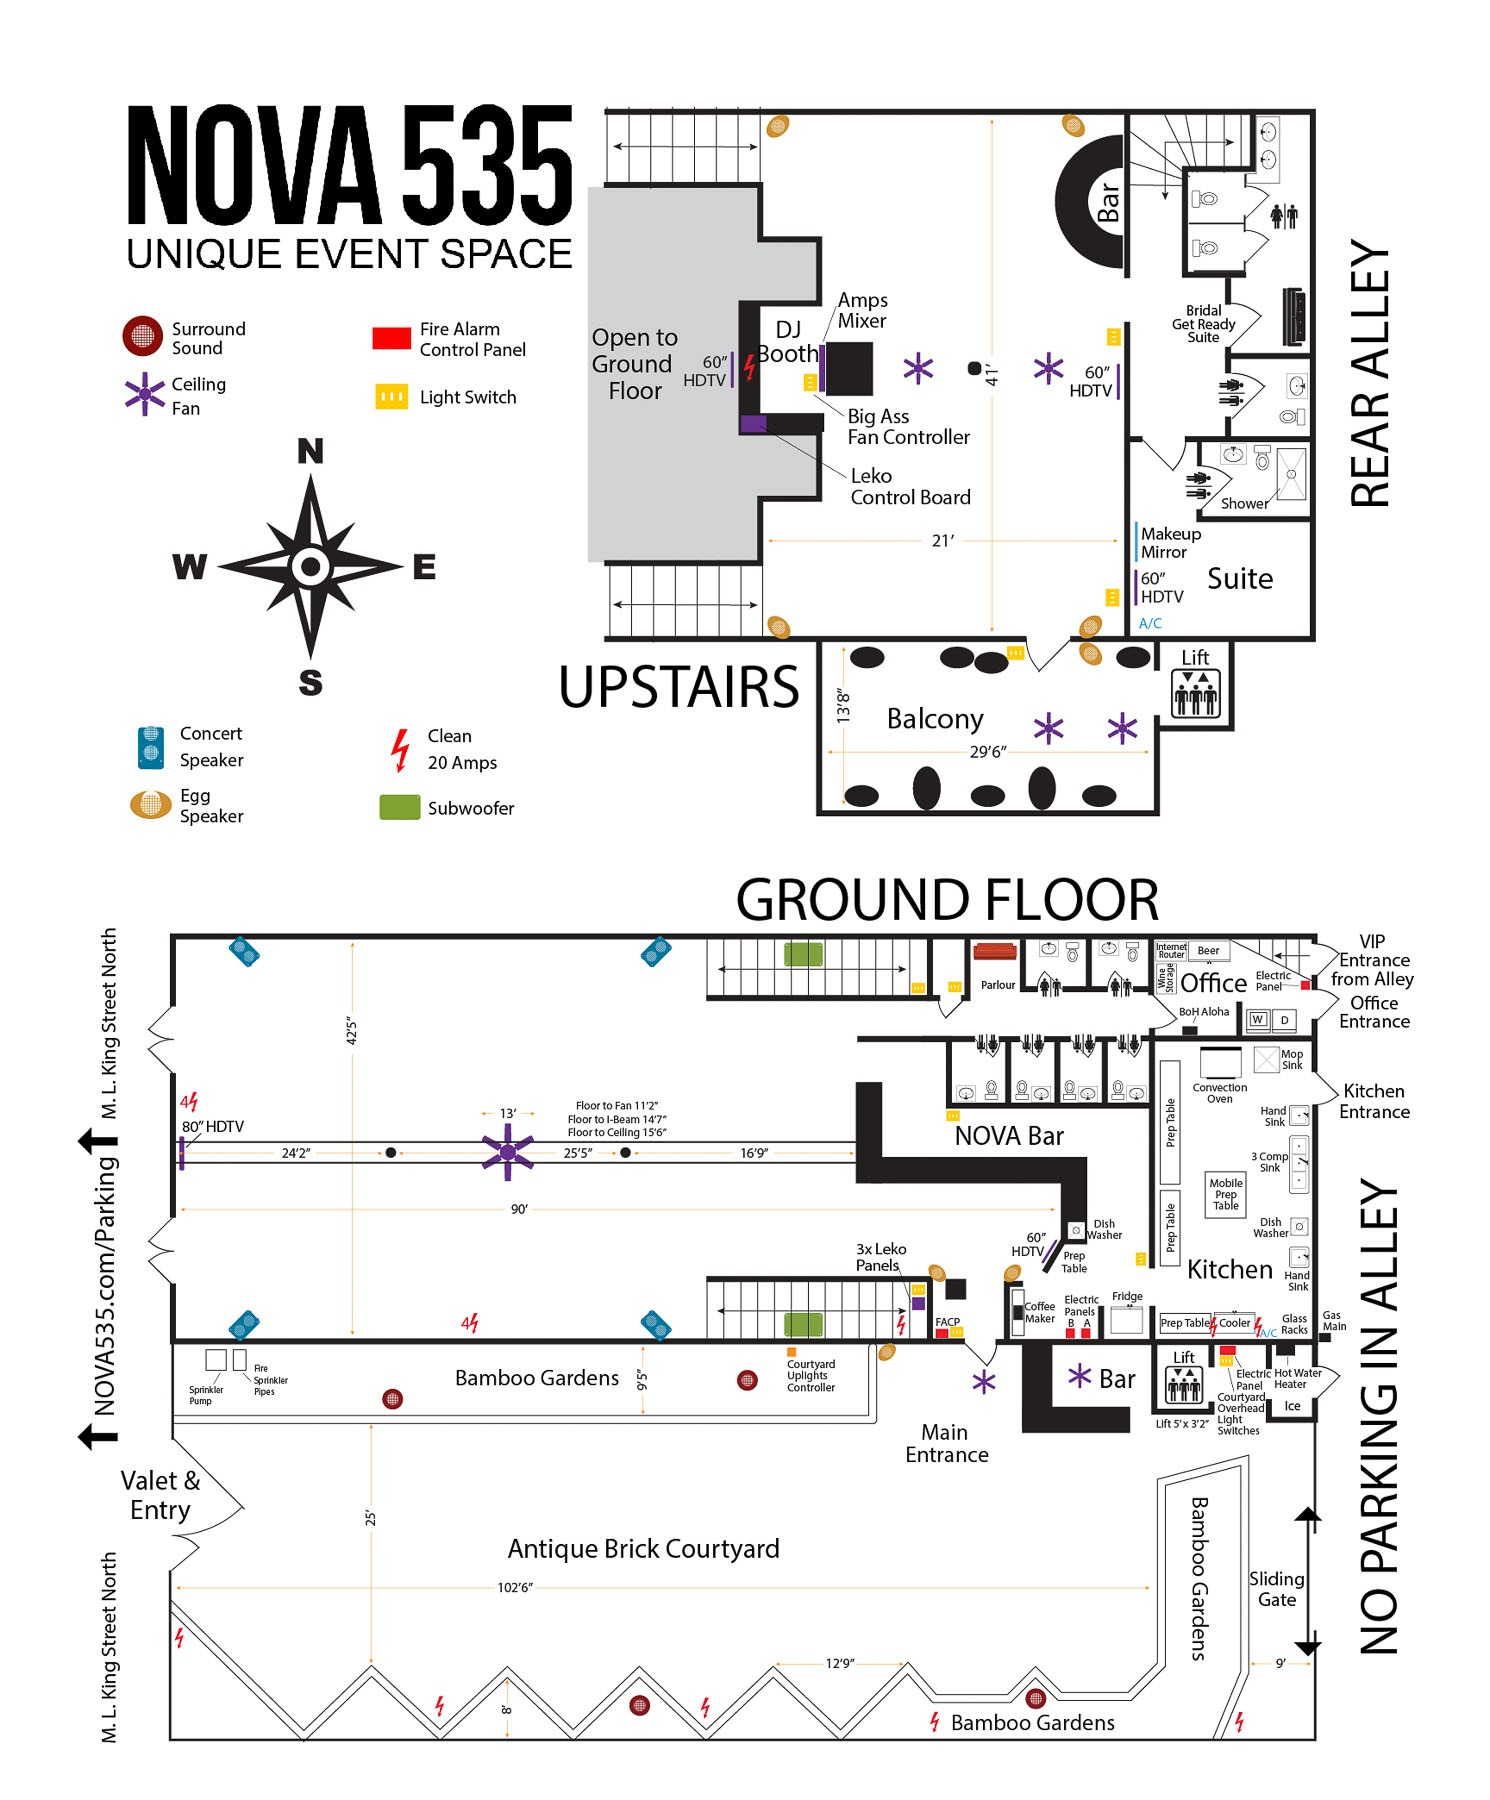 2019 downtown St. Pete venue NOVA 535 Venue Map for NOVA 535 website